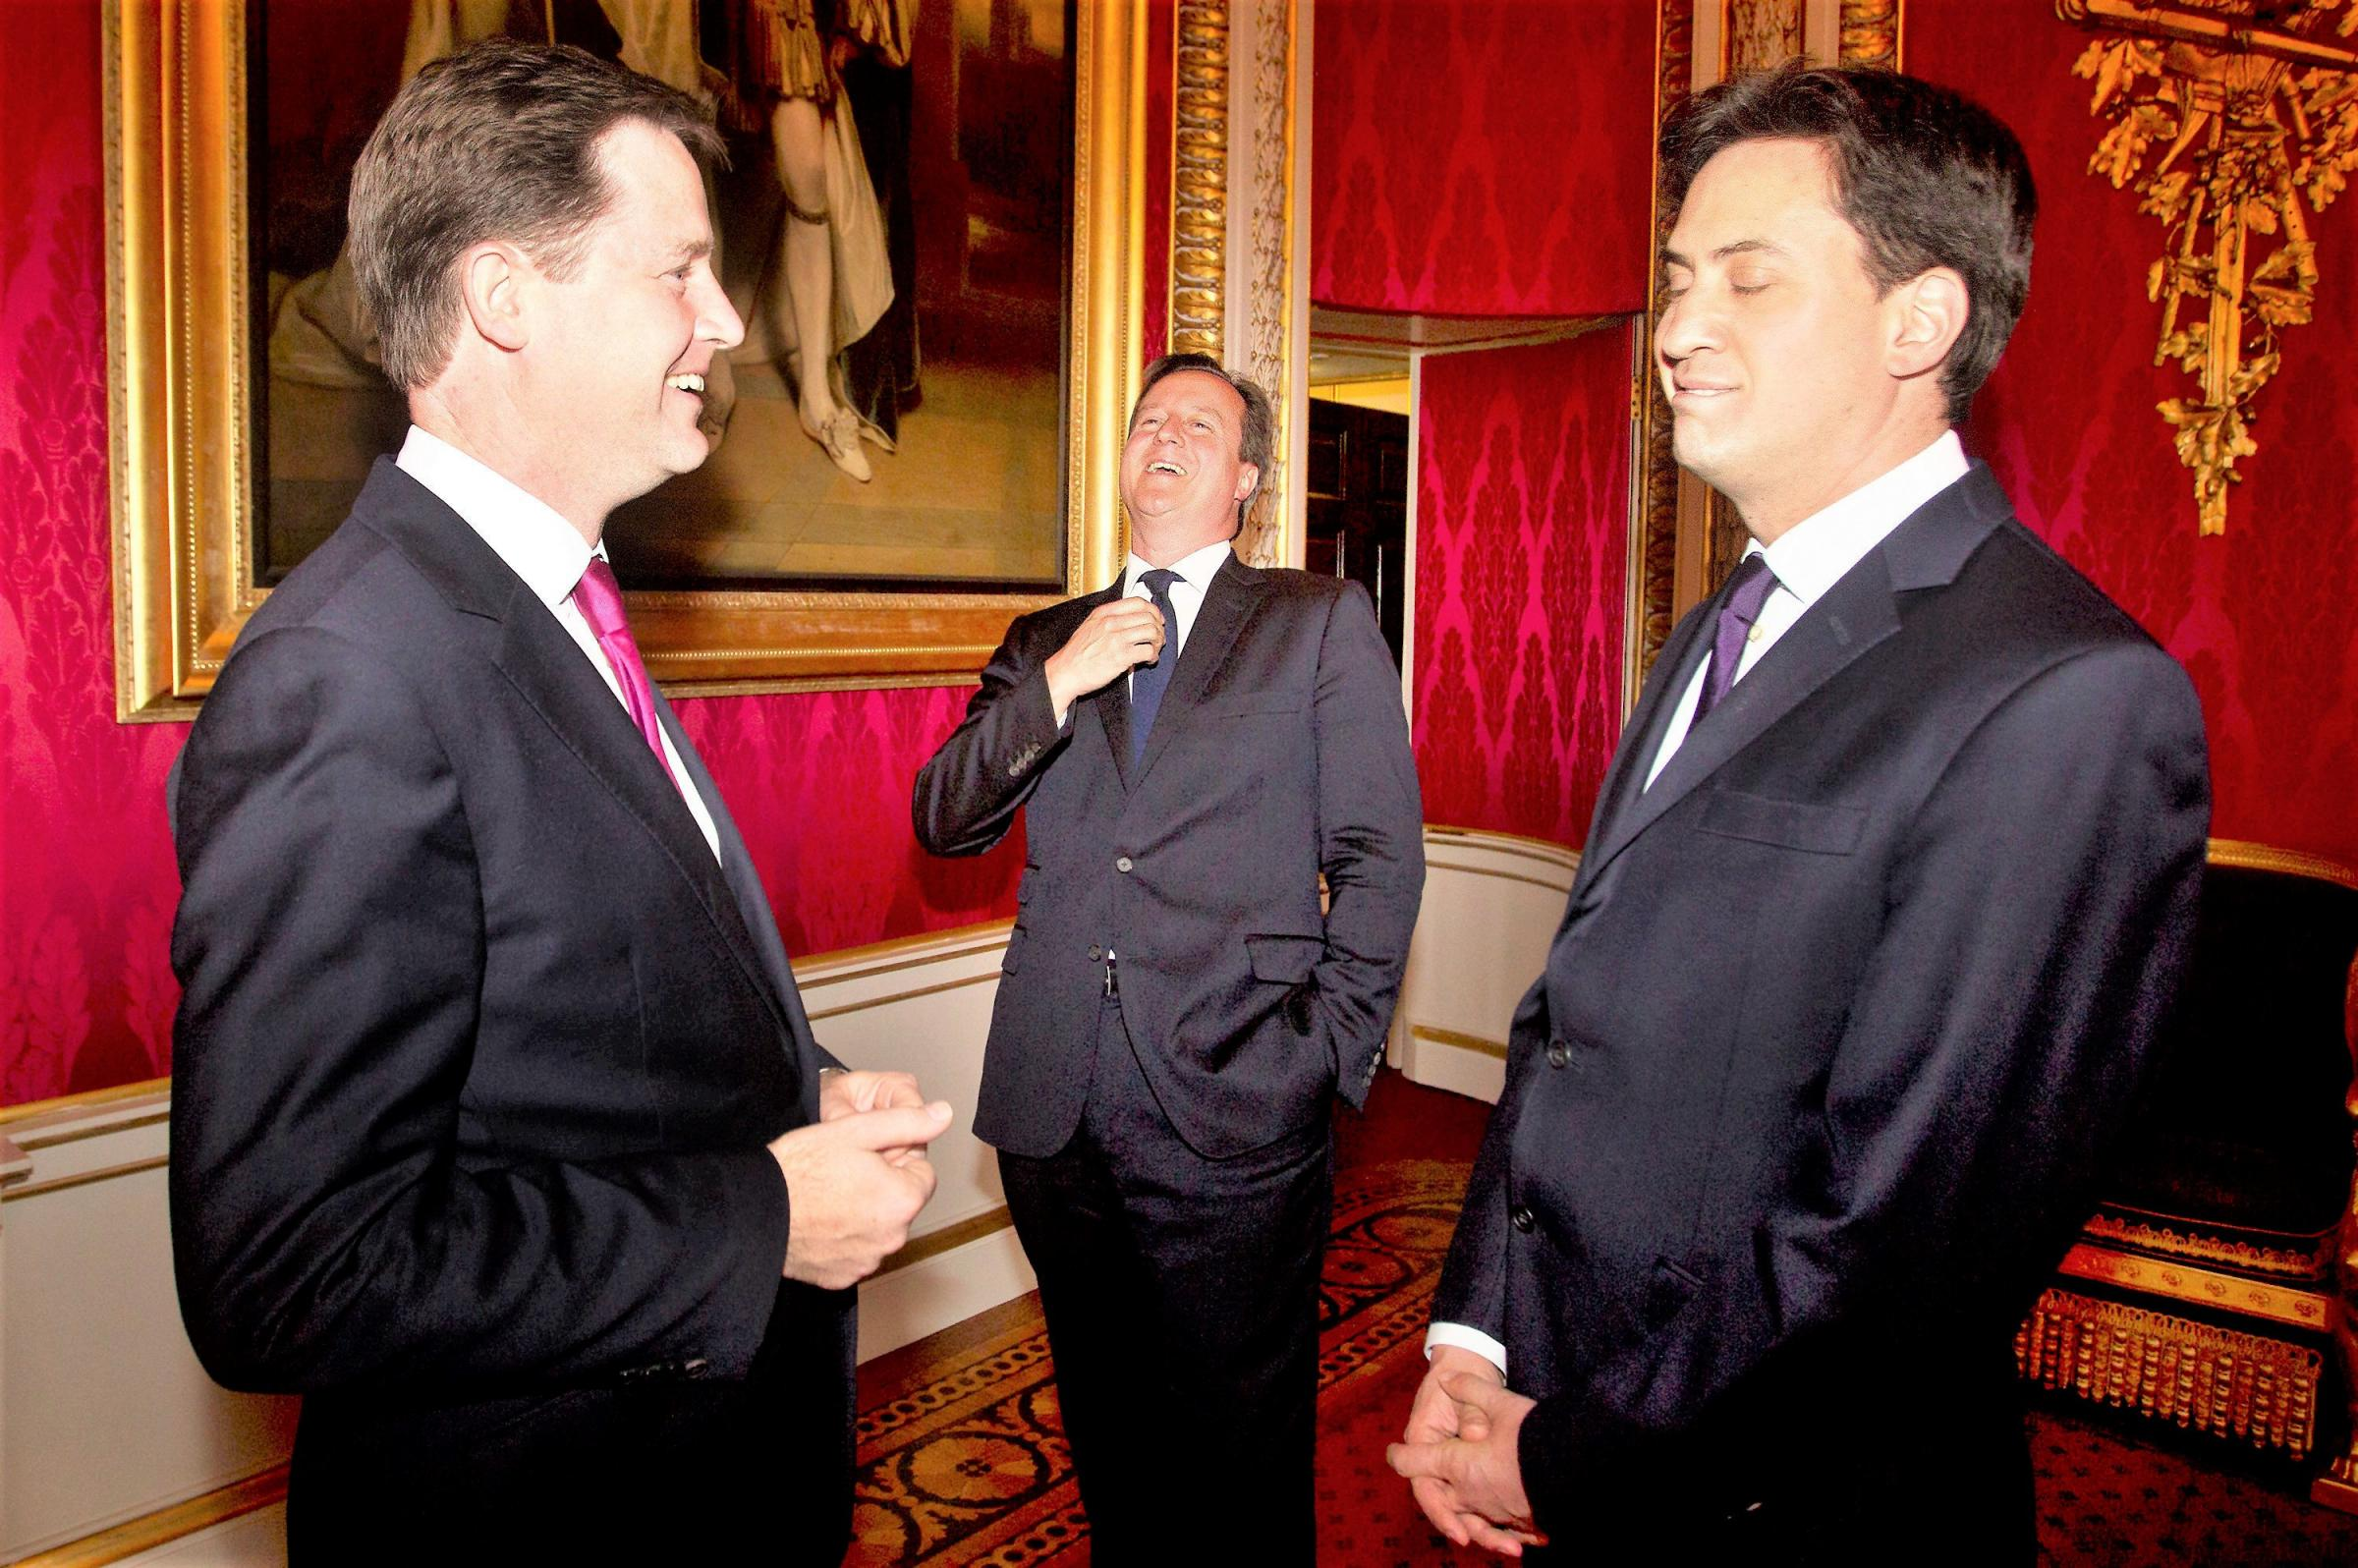 The Three Stooges are silent now their EU lie has been exposed